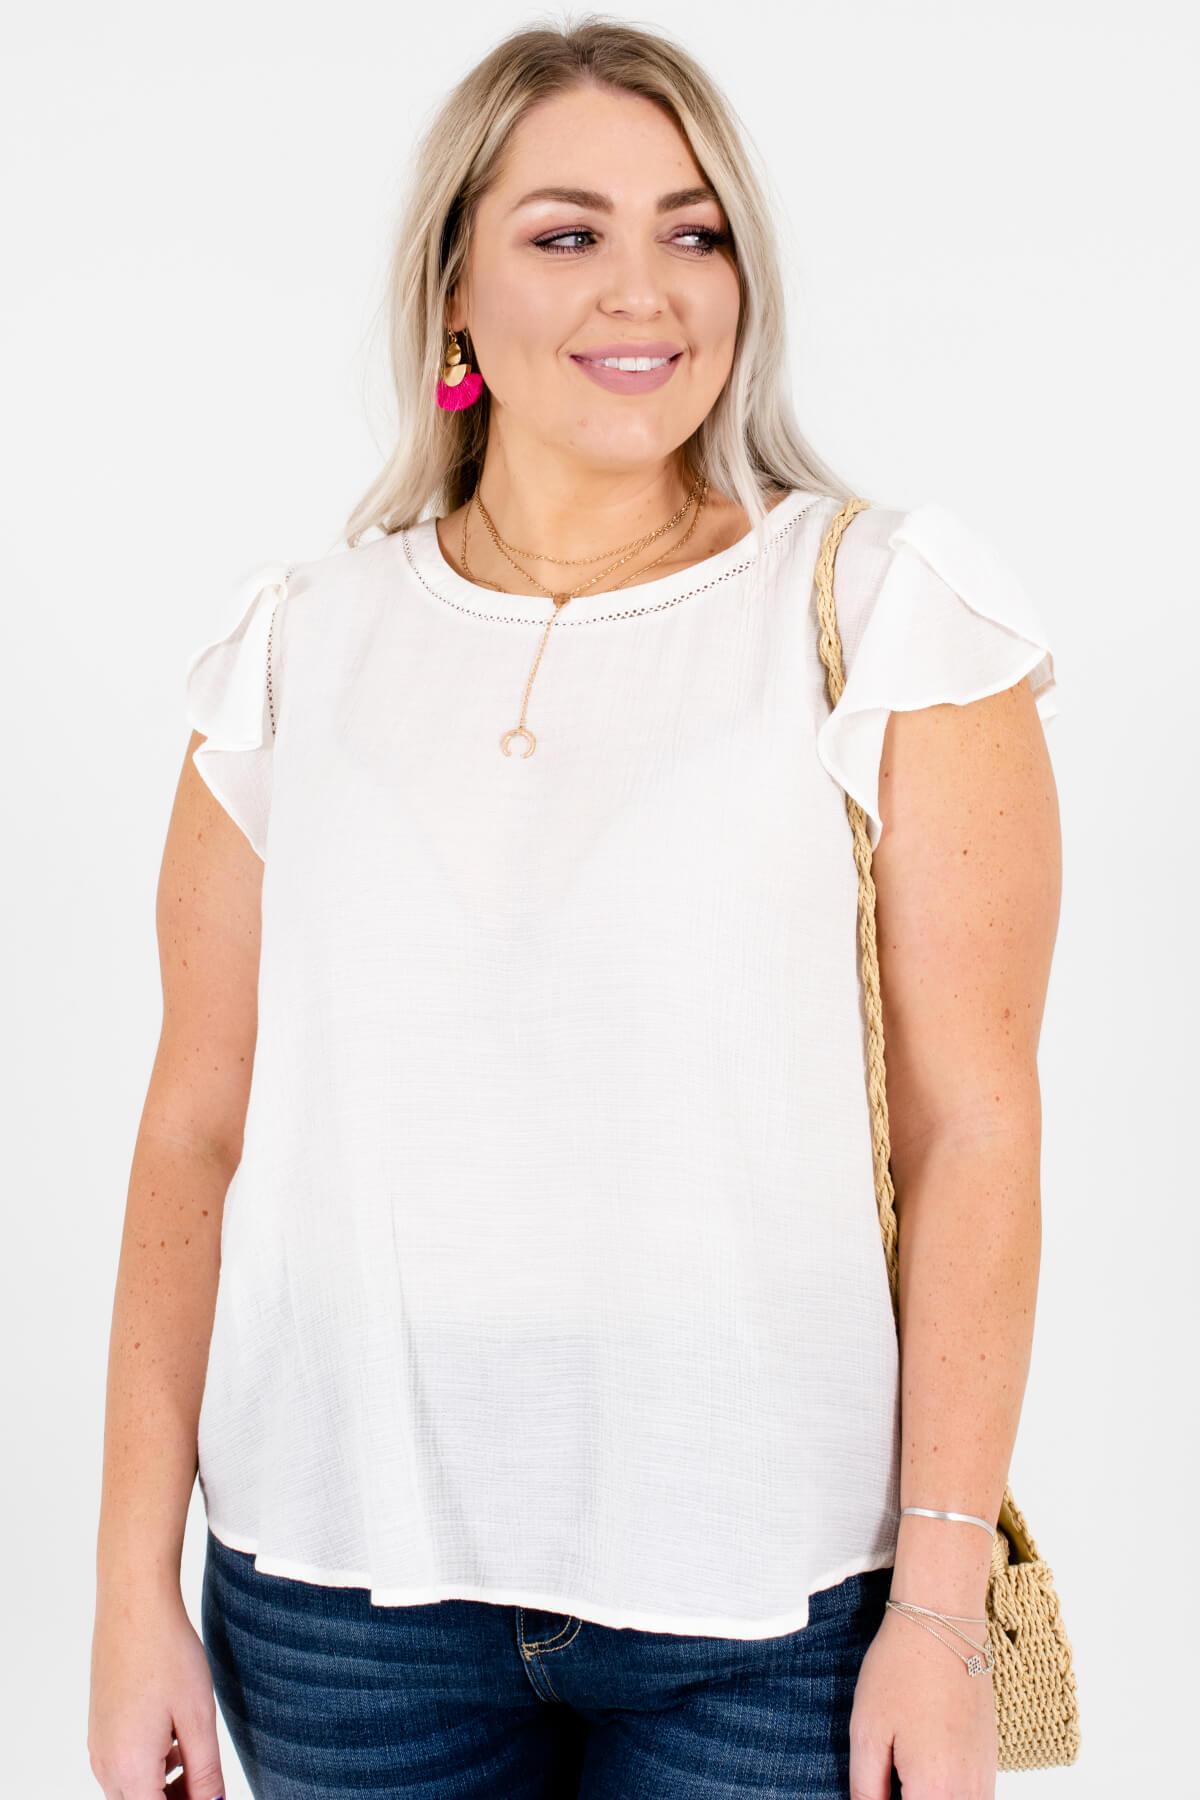 beautiful design top-rated quality durable service Simply Splendid White Blouse